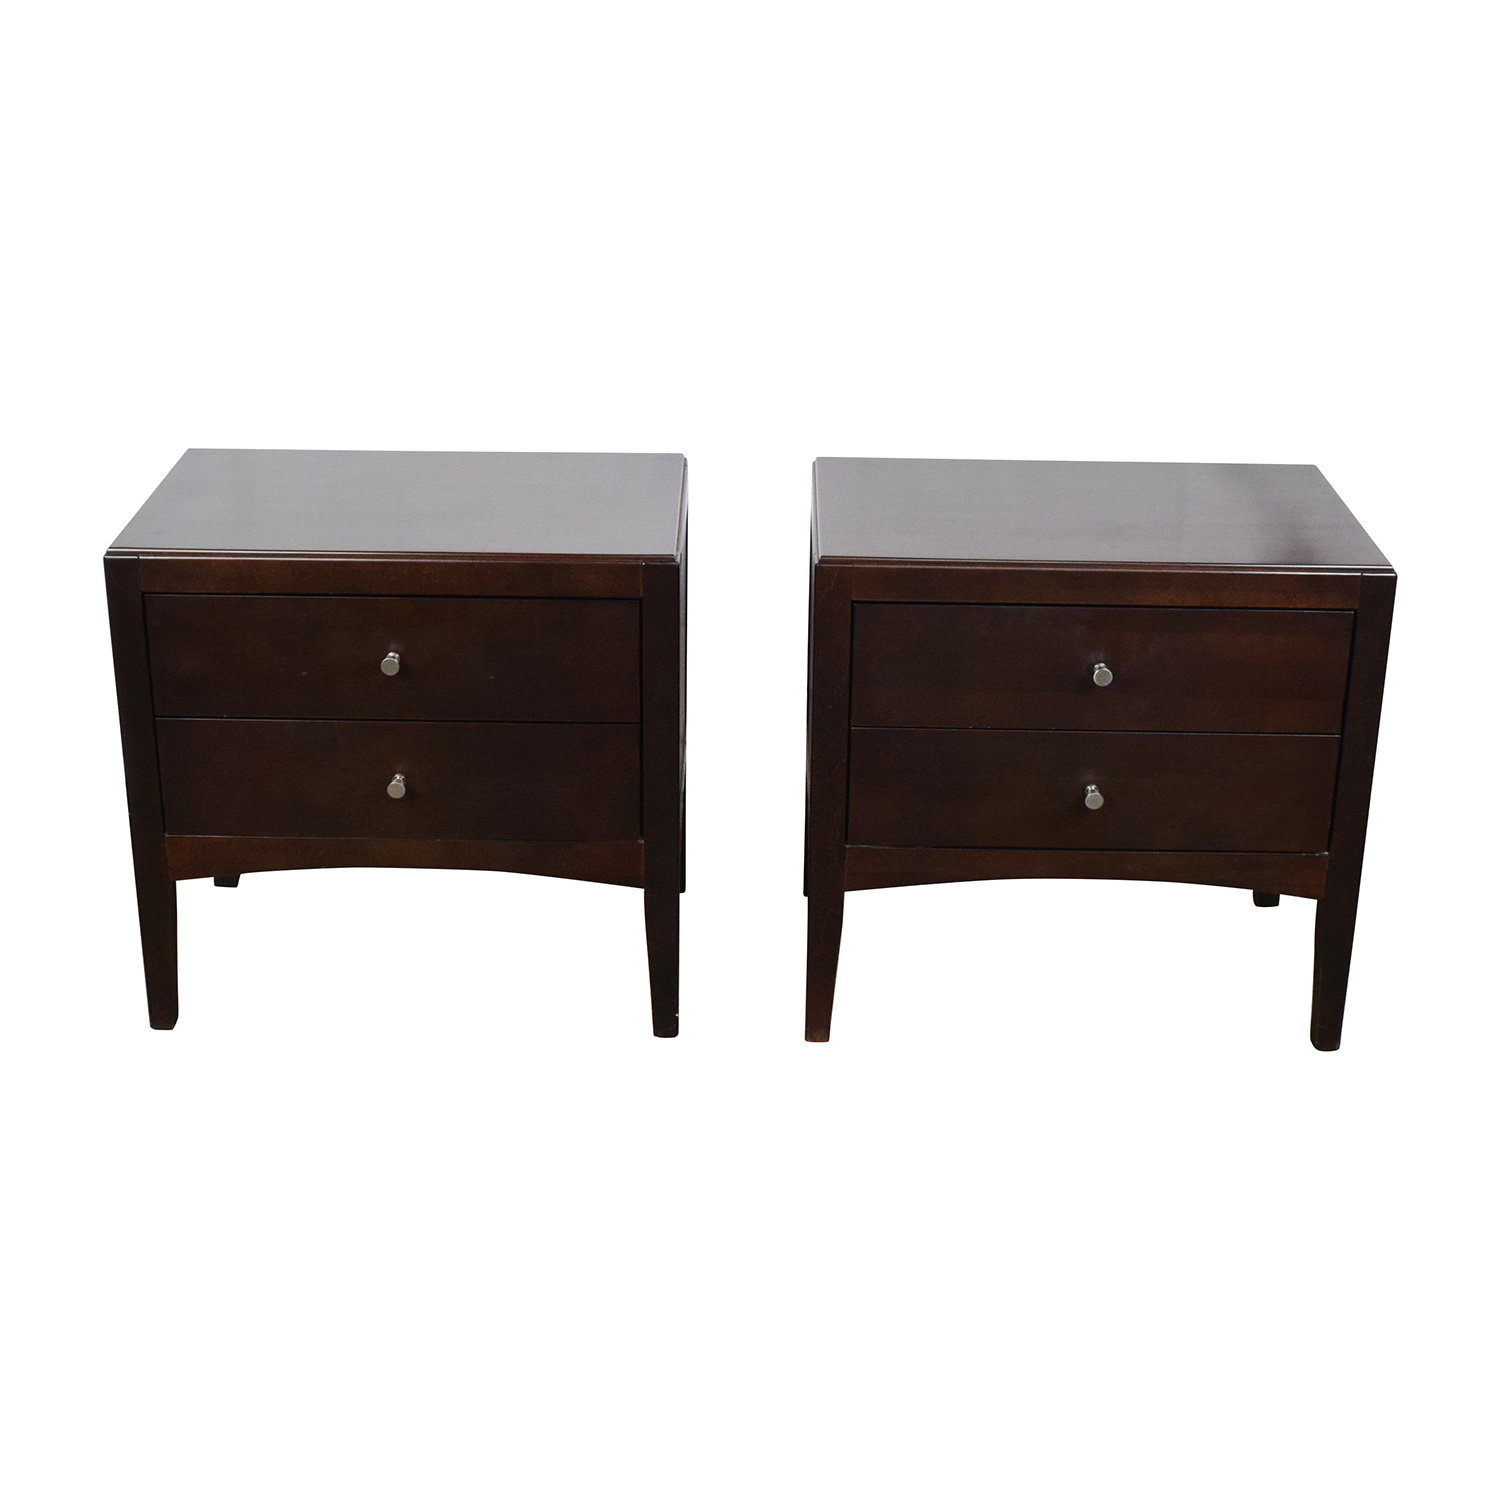 44% OFF Macy s Macy s Dark Wood Two Drawer Nightstands Tables